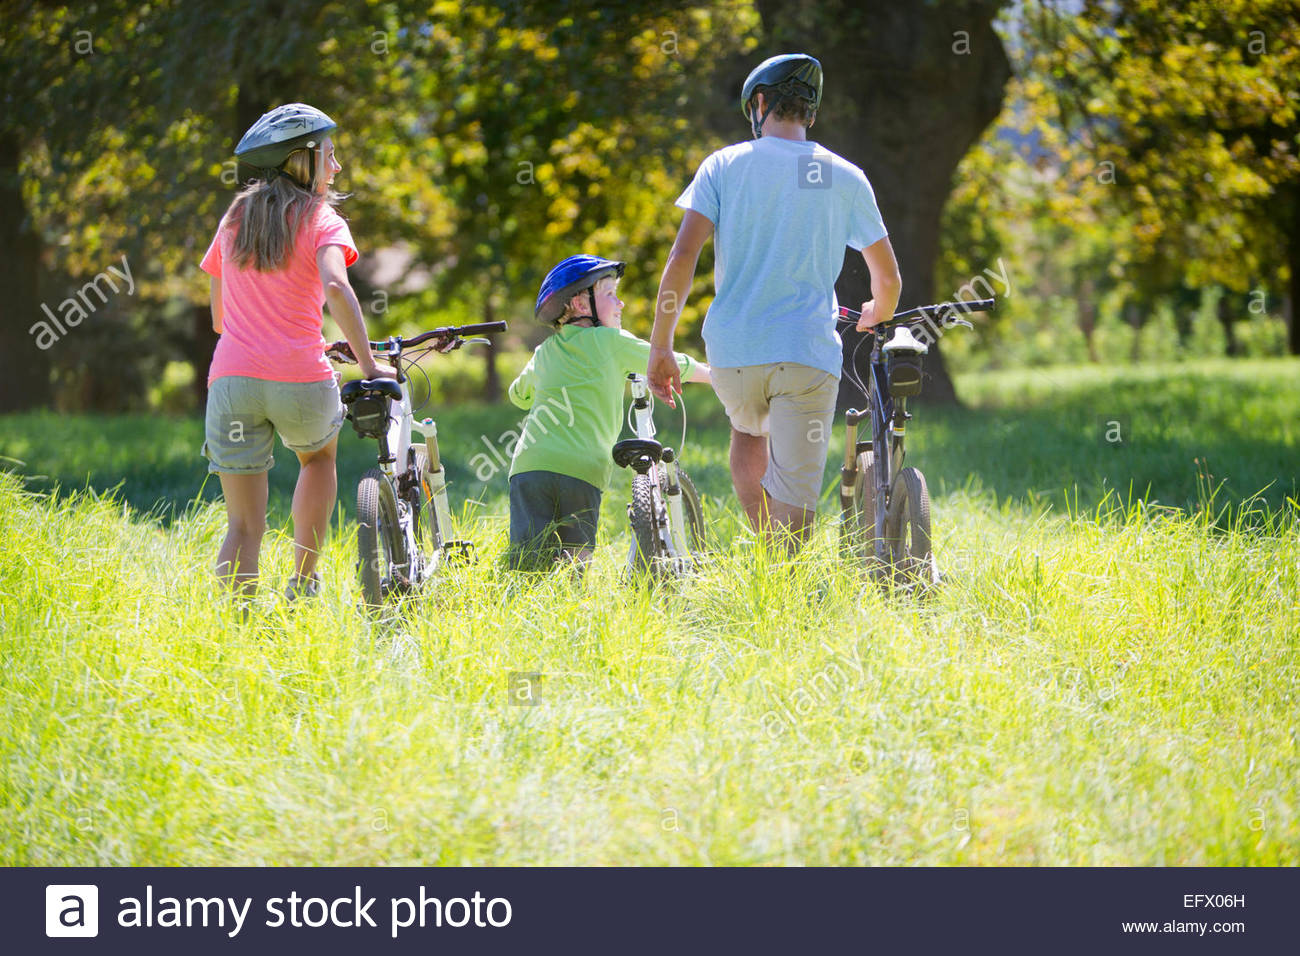 Family, pushing mountain bikes, in treelined field - Stock Image